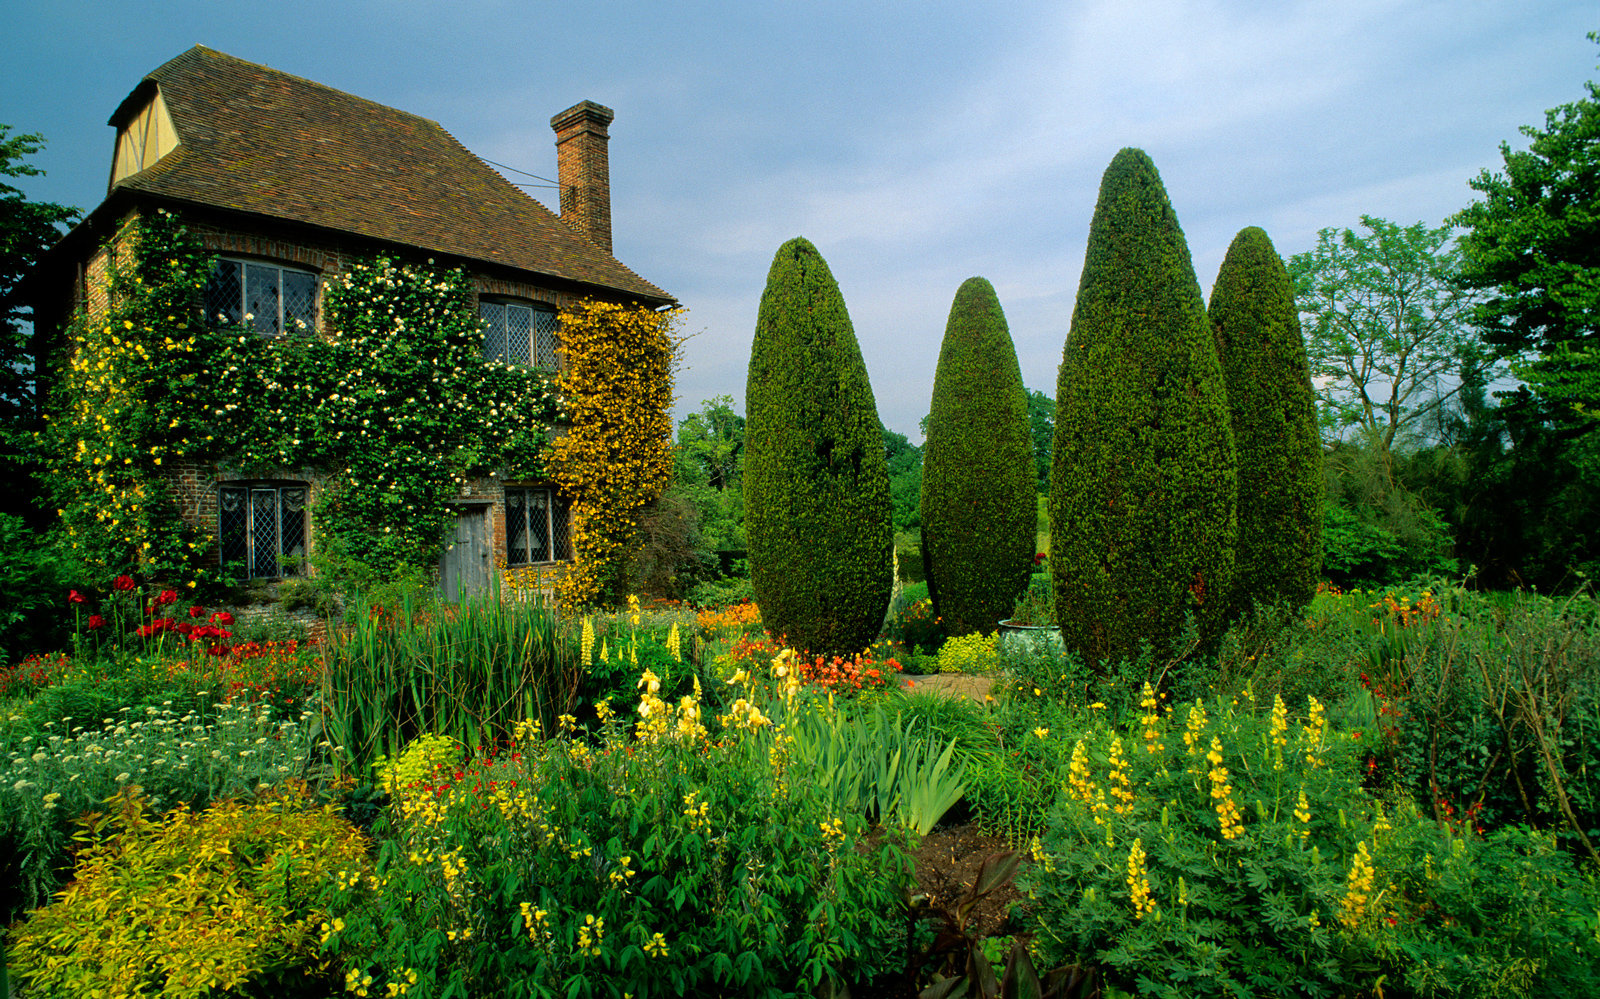 Sissinghurst's garden was created in the 1930s by Vita Sackville-West, poet and gardening writer, and her husband Harold Nicolson, author and diplomat.